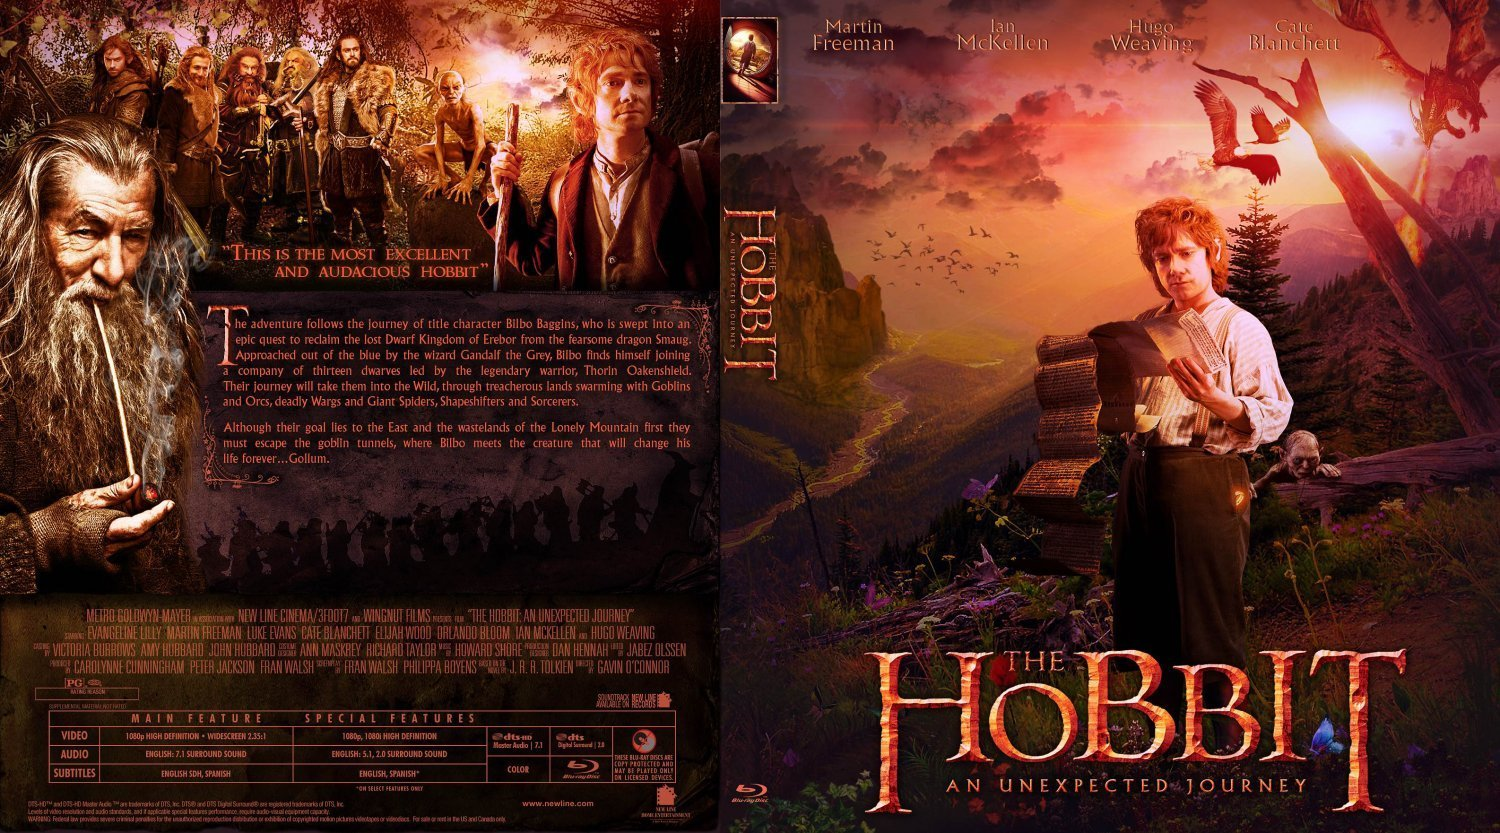 The hobbit movie poster shop